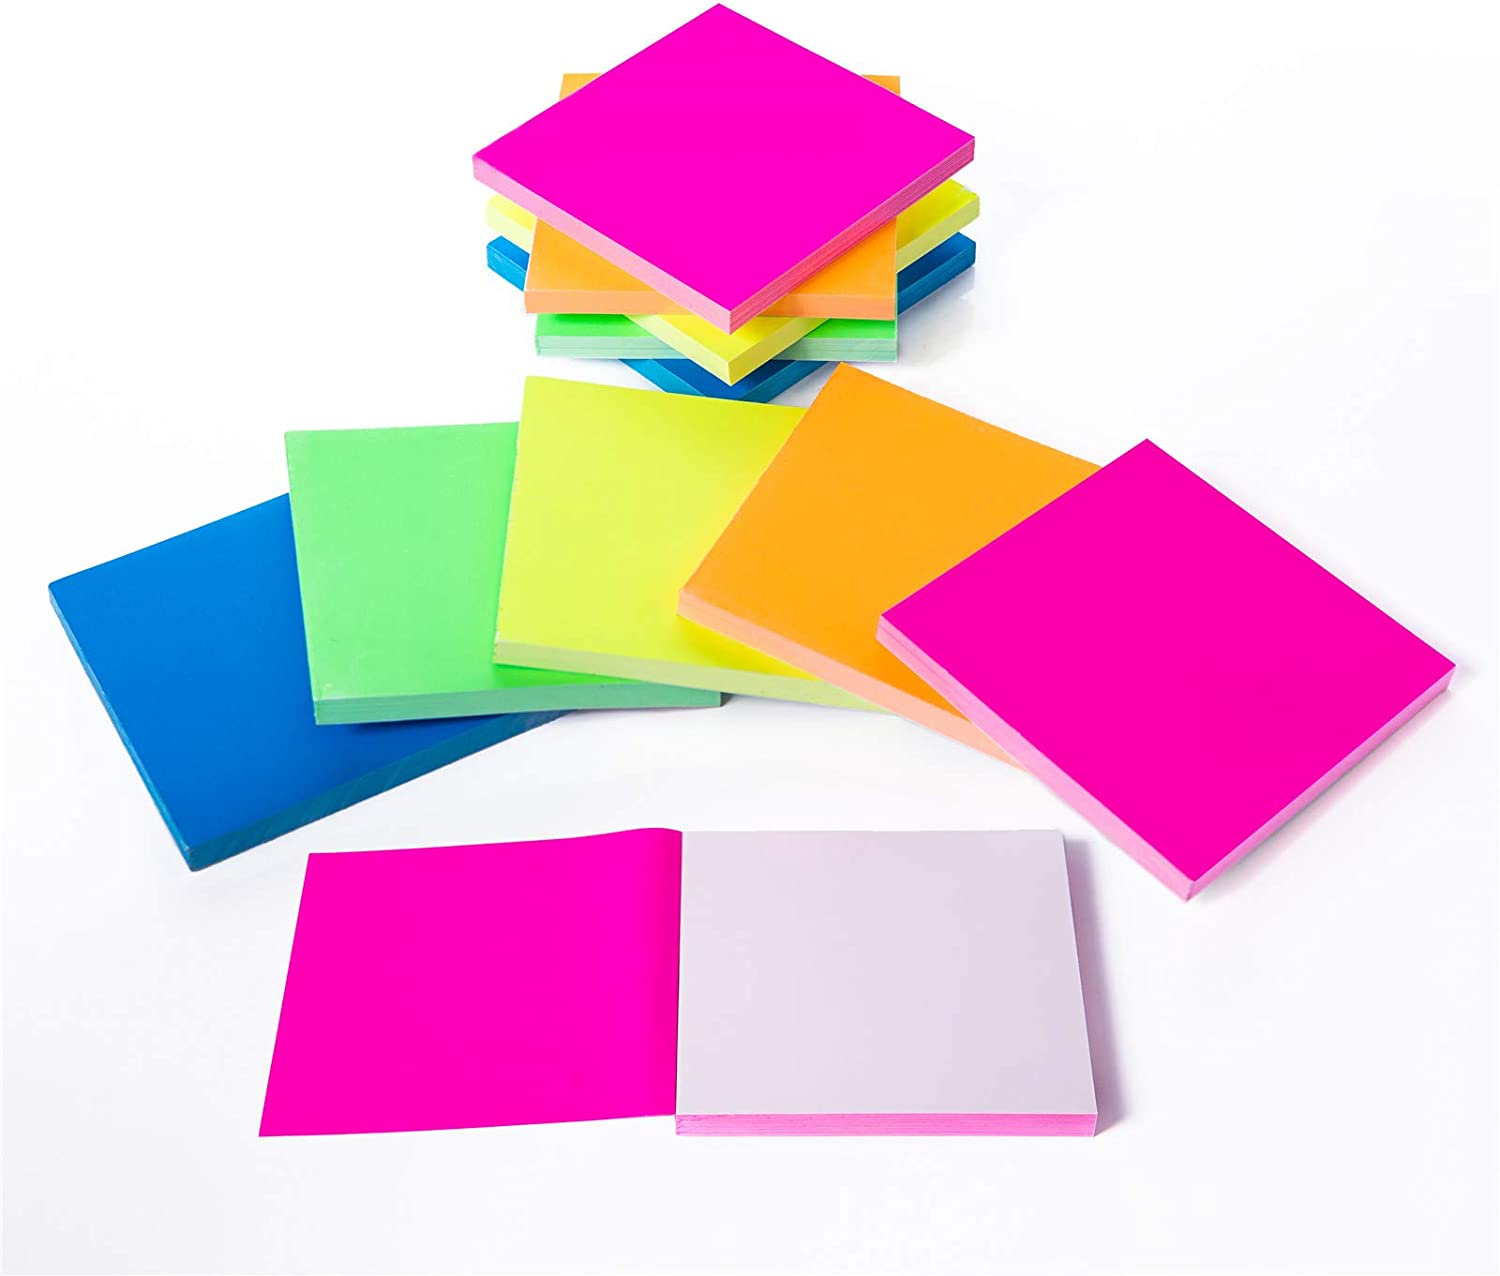 Sticky Notes 3x3 inches,Five Colors Glue Free Static Cling Sticky Notes,Waterproof Self-Stick Pads,Easy to Post for Studying,Office, School, and Home 100 Sheets/pad